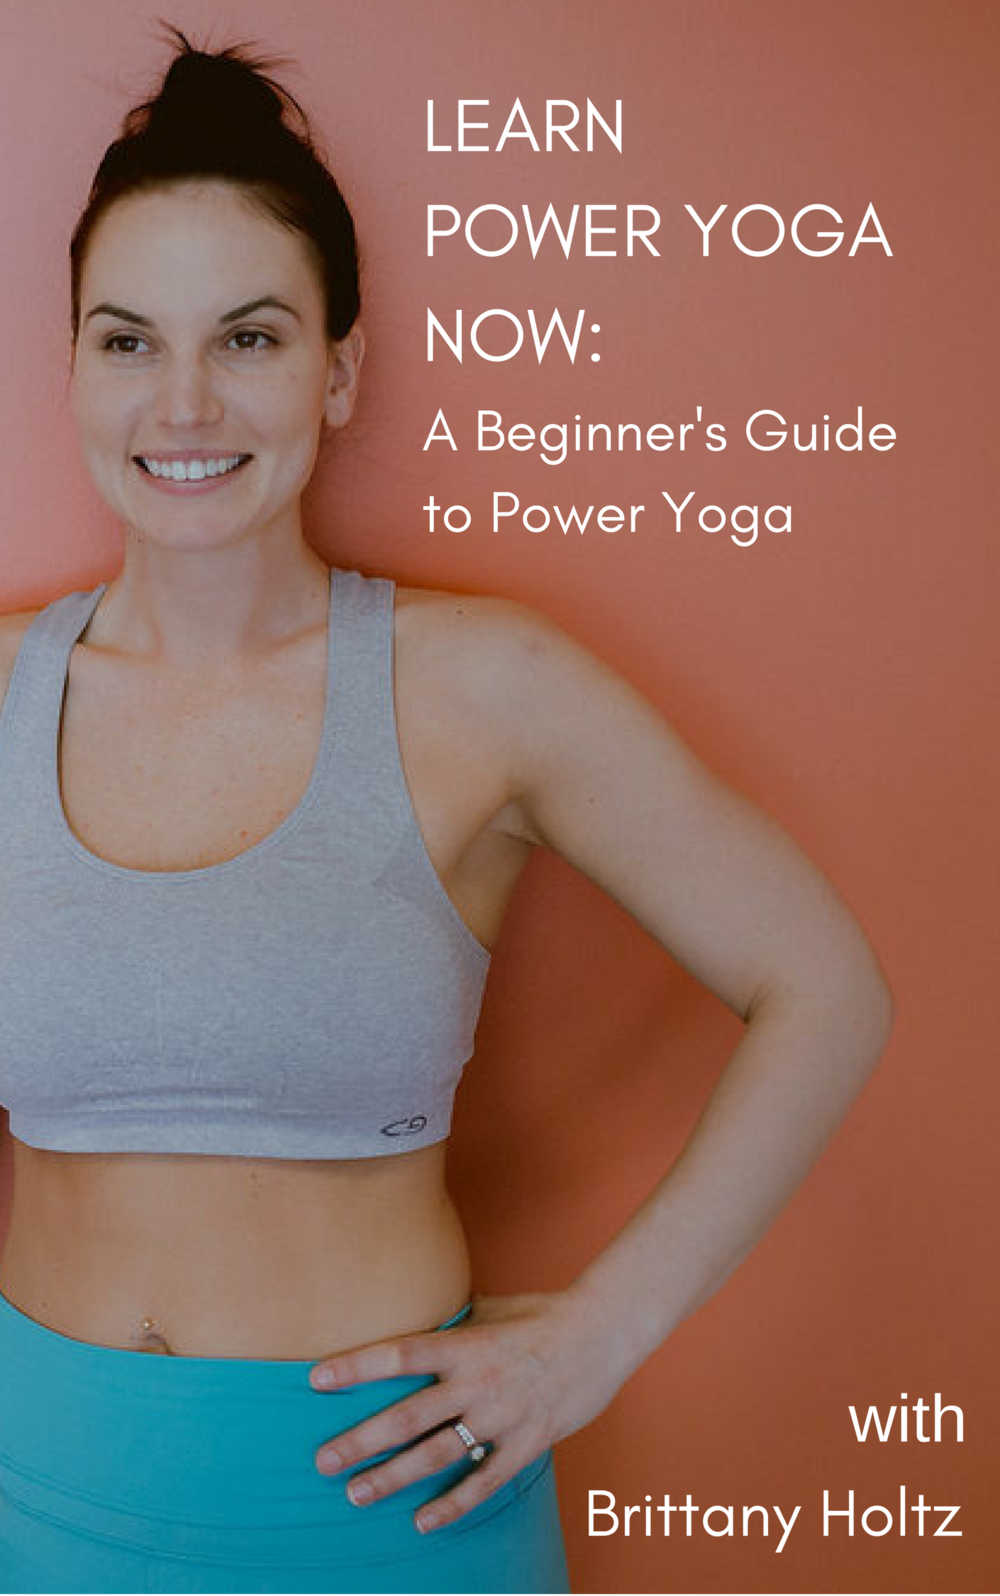 LEARN POWER YOGA NOW (1).png